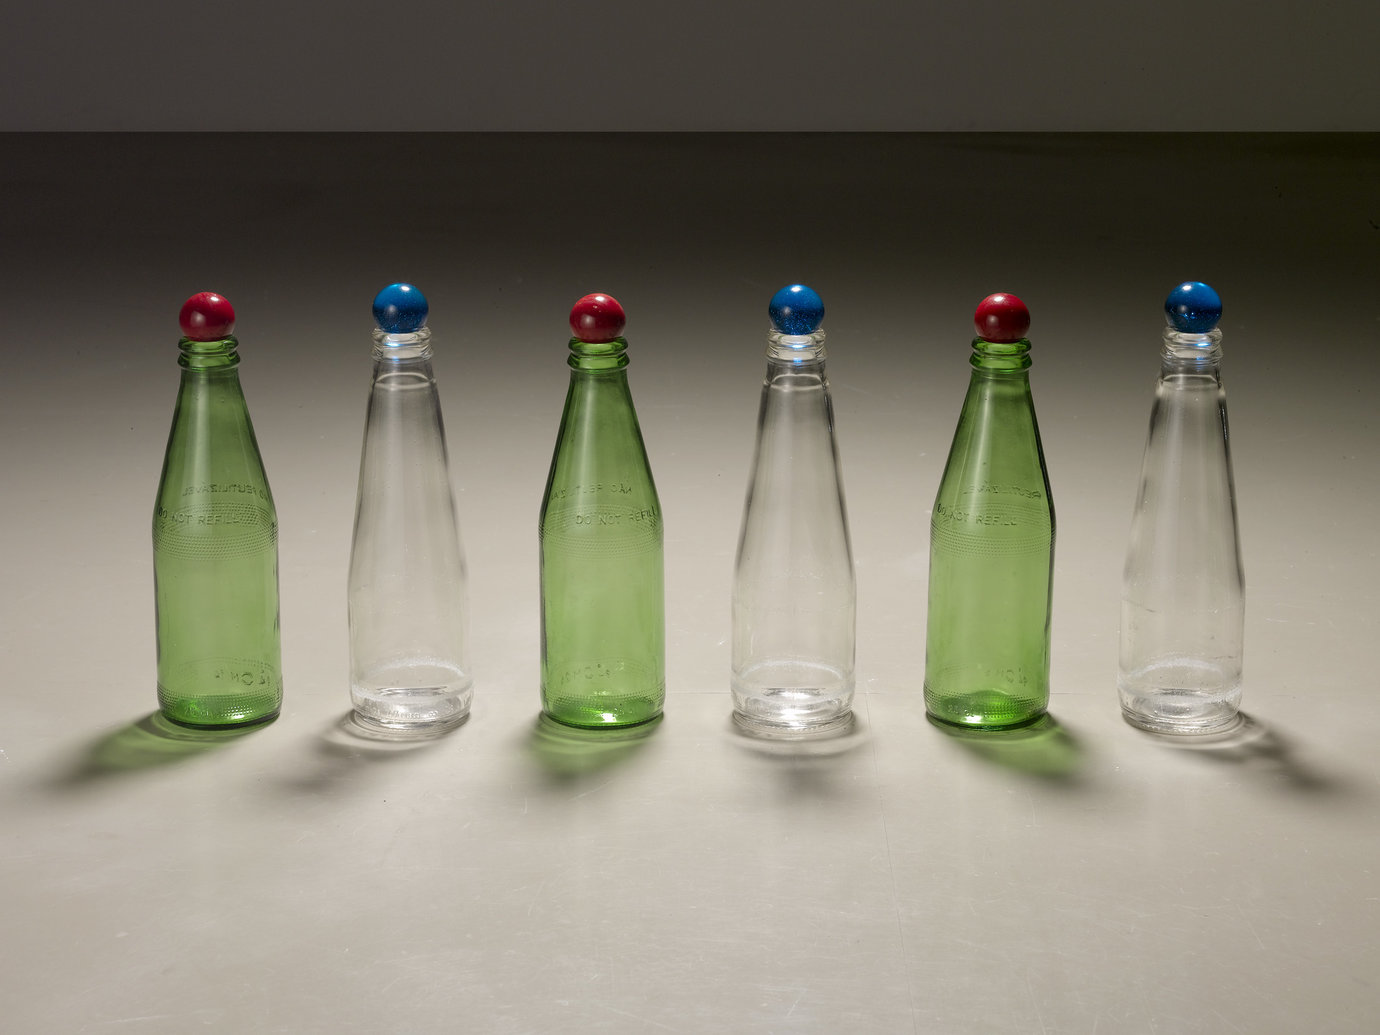 ", 2007. Glass bottles, glass marbles, 8"" x 20"" x 2"" (20.3 cm x 50.8 cm x 5.1 cm)."